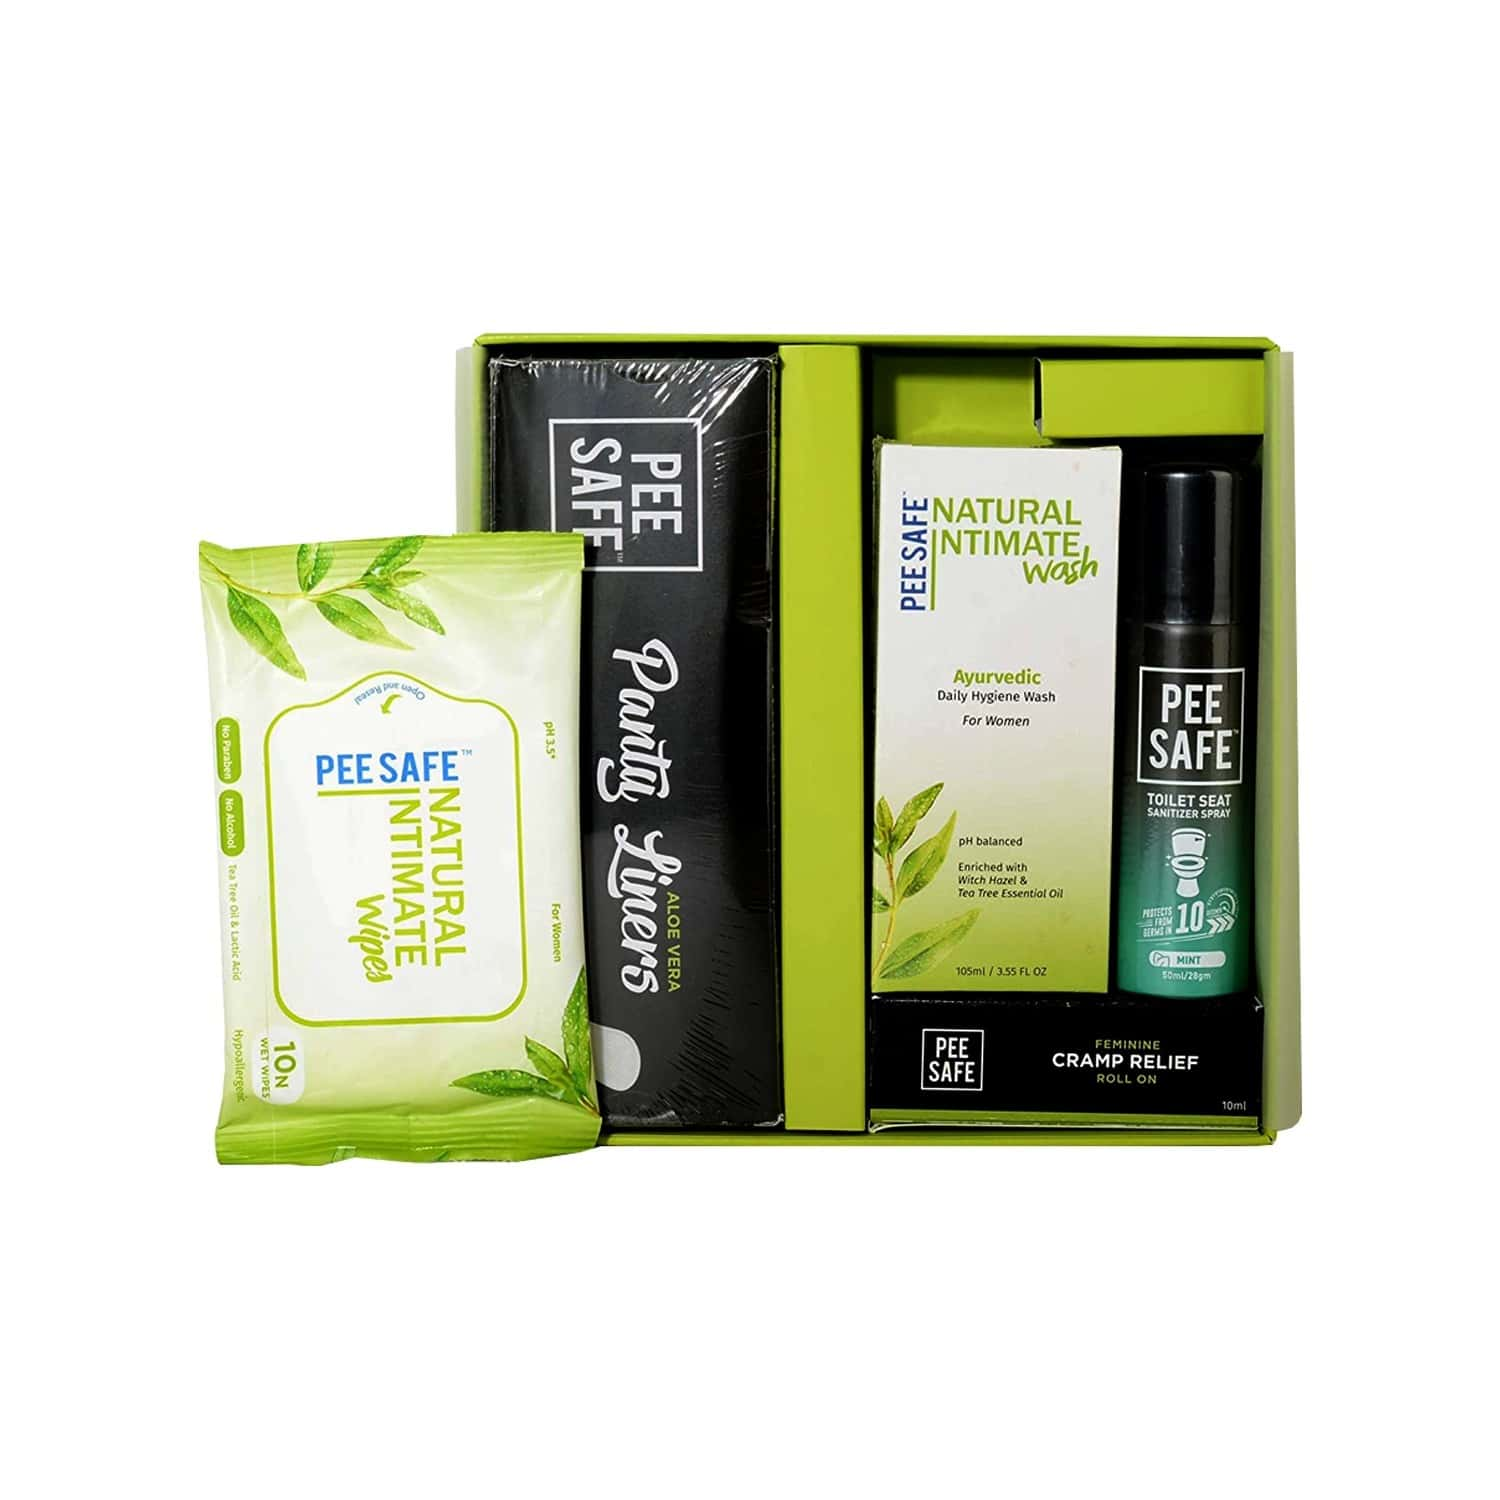 Pee Safe  Combikit  (25n Panty Liners|cramp Relief Roll On|toilet Seat Sanitizer Spray - Mint 50ml)